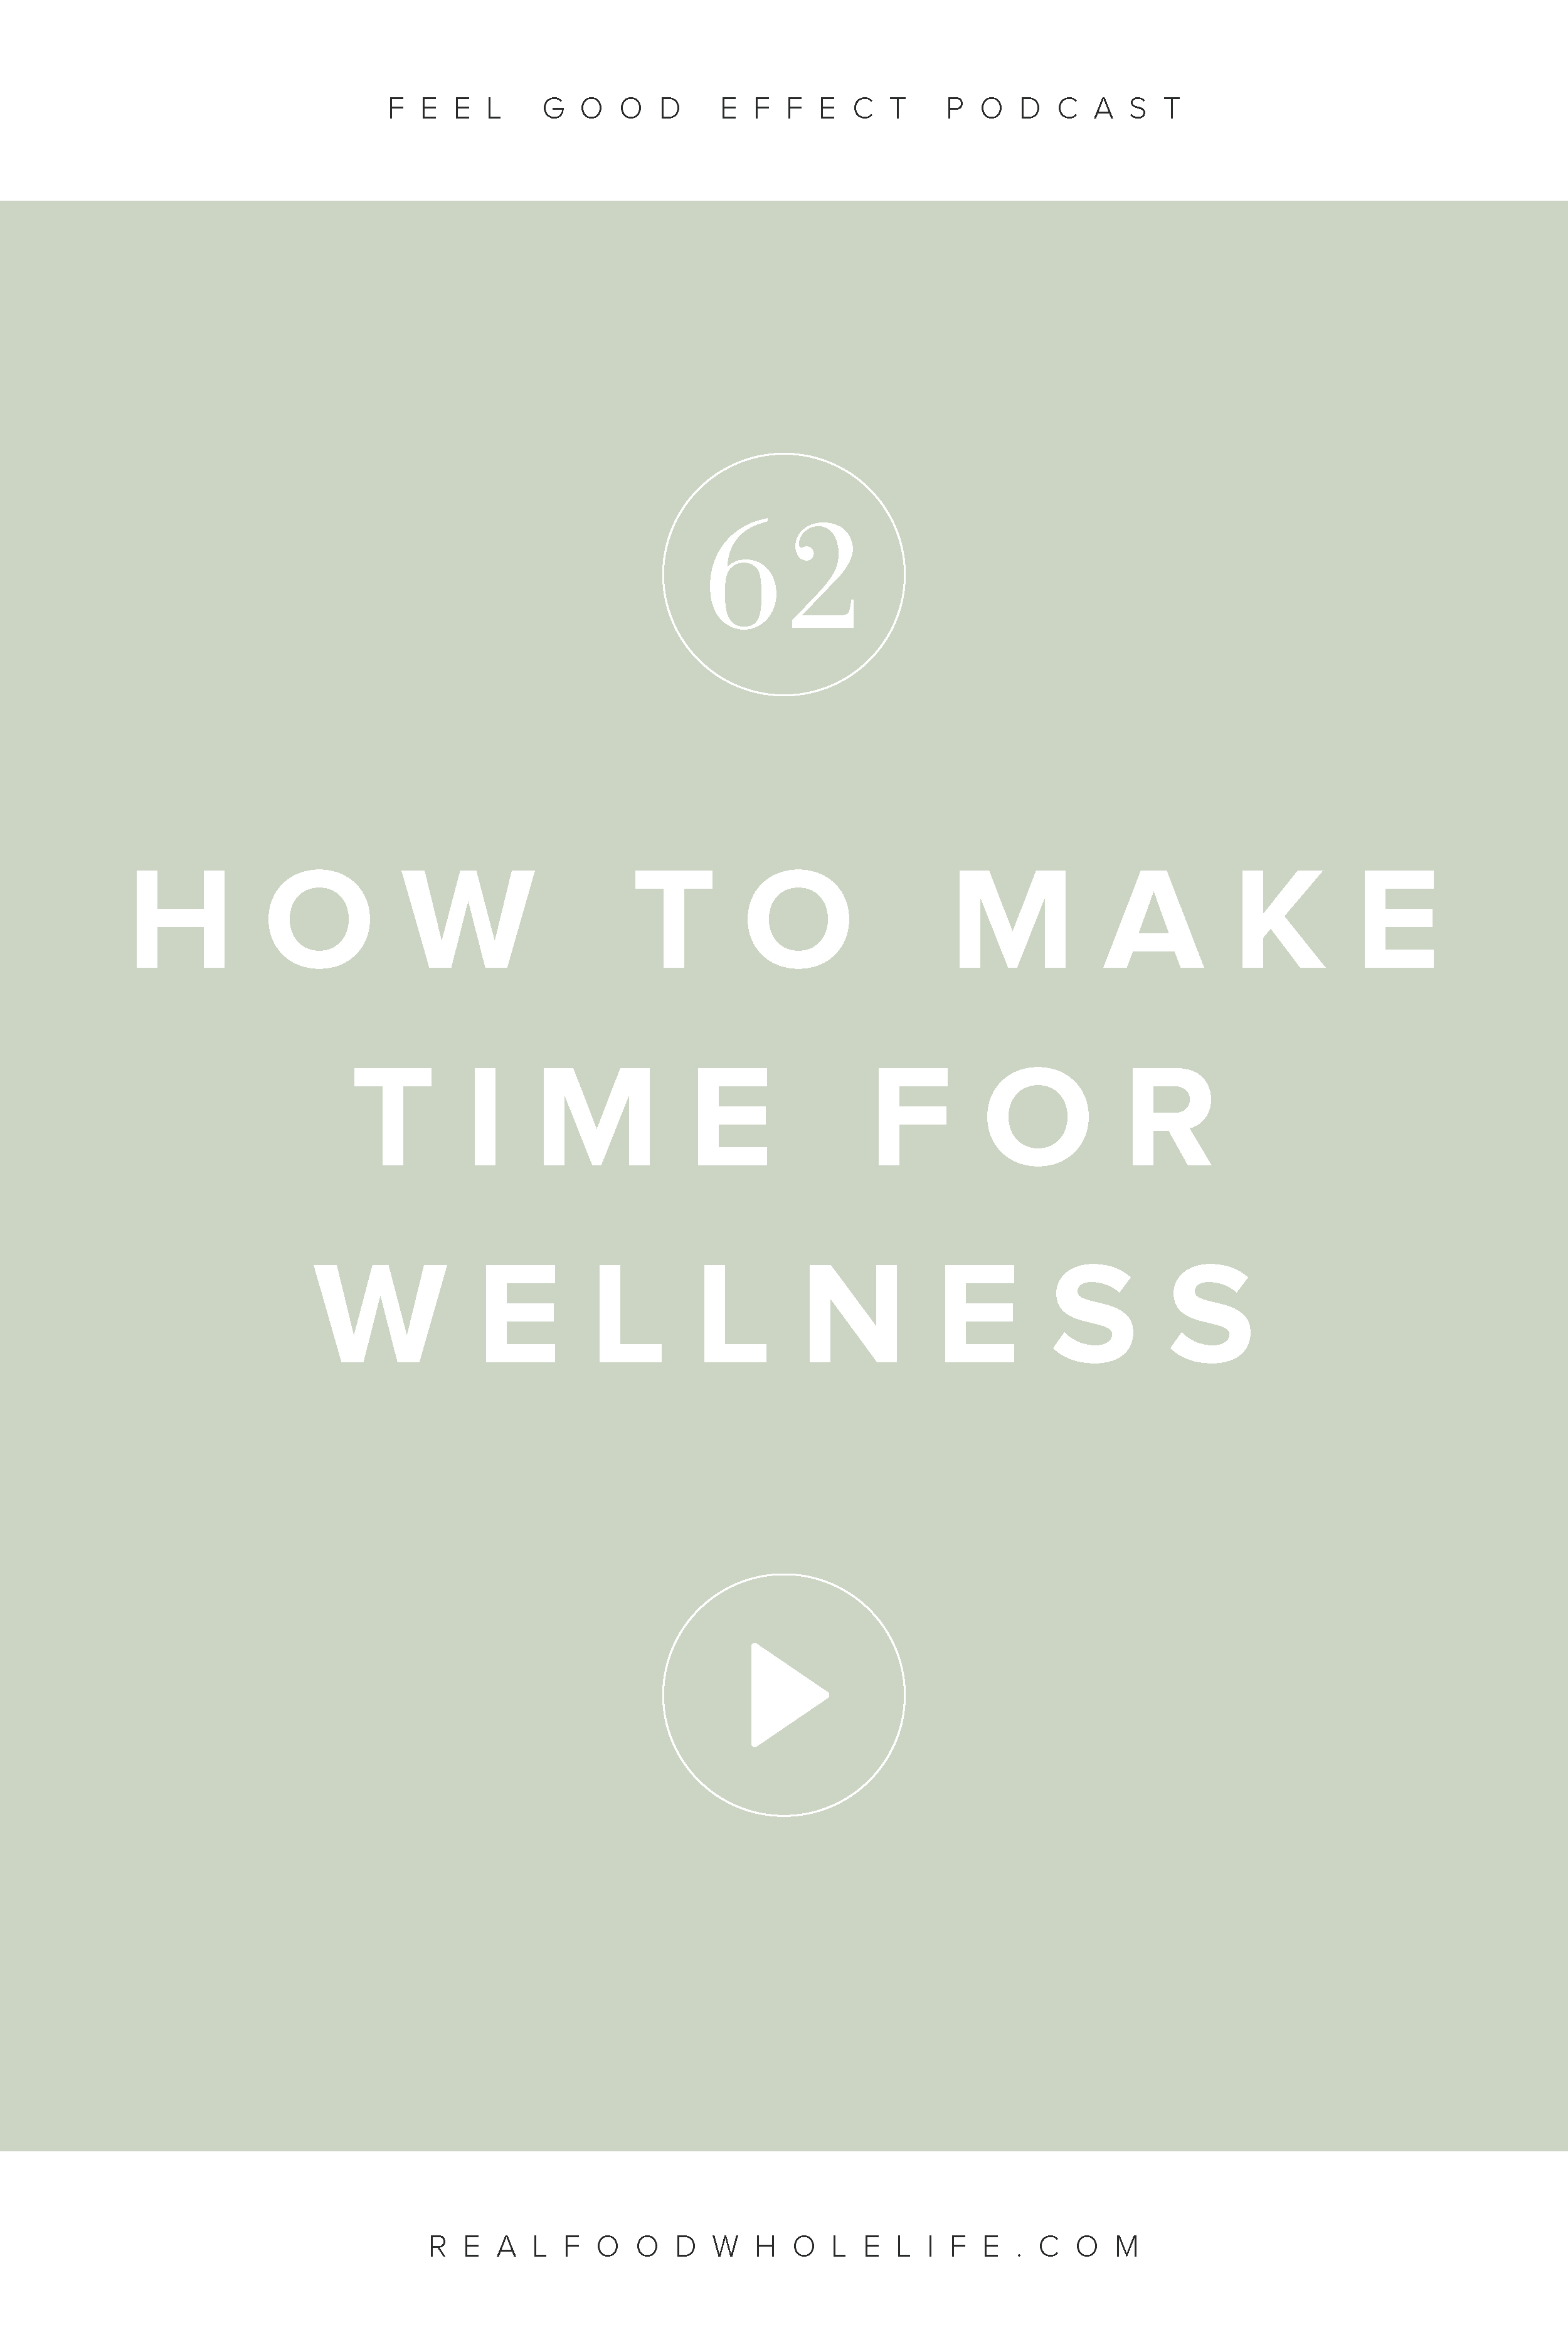 This week's episode is about how to shift your mindset so that you can find the time for wellness. You can have all the tips and strategies, but if you're not able to shift your mindset about how you're thinking about wellness and health those strategies will get you nowhere. Learn how to implement both mindset and strategy into your wellness routine. #feelgoodeffect #wellnesspodcast #mindset